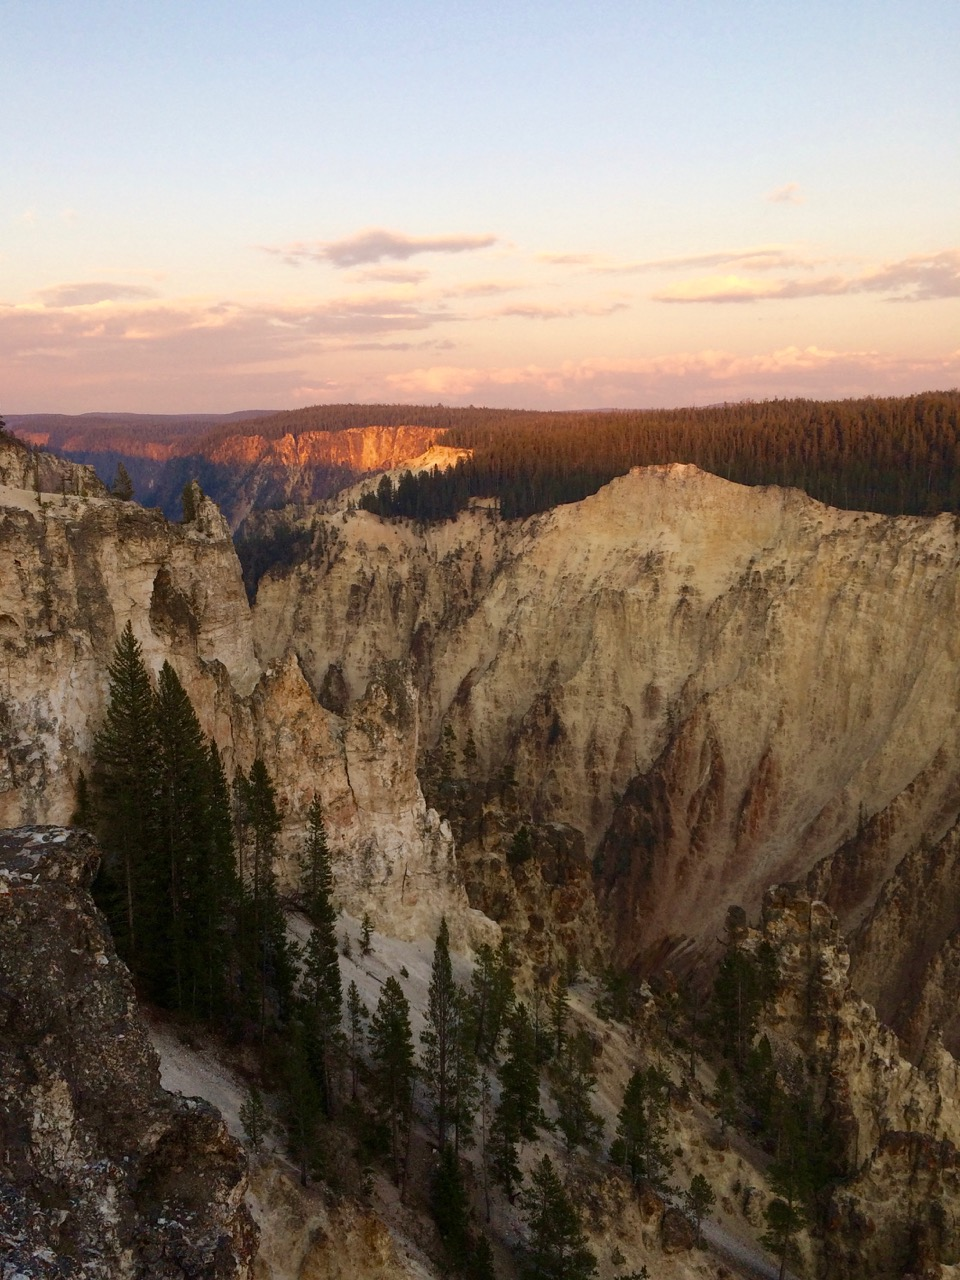 The Grand Canyon of the Yellowstone at Sunset